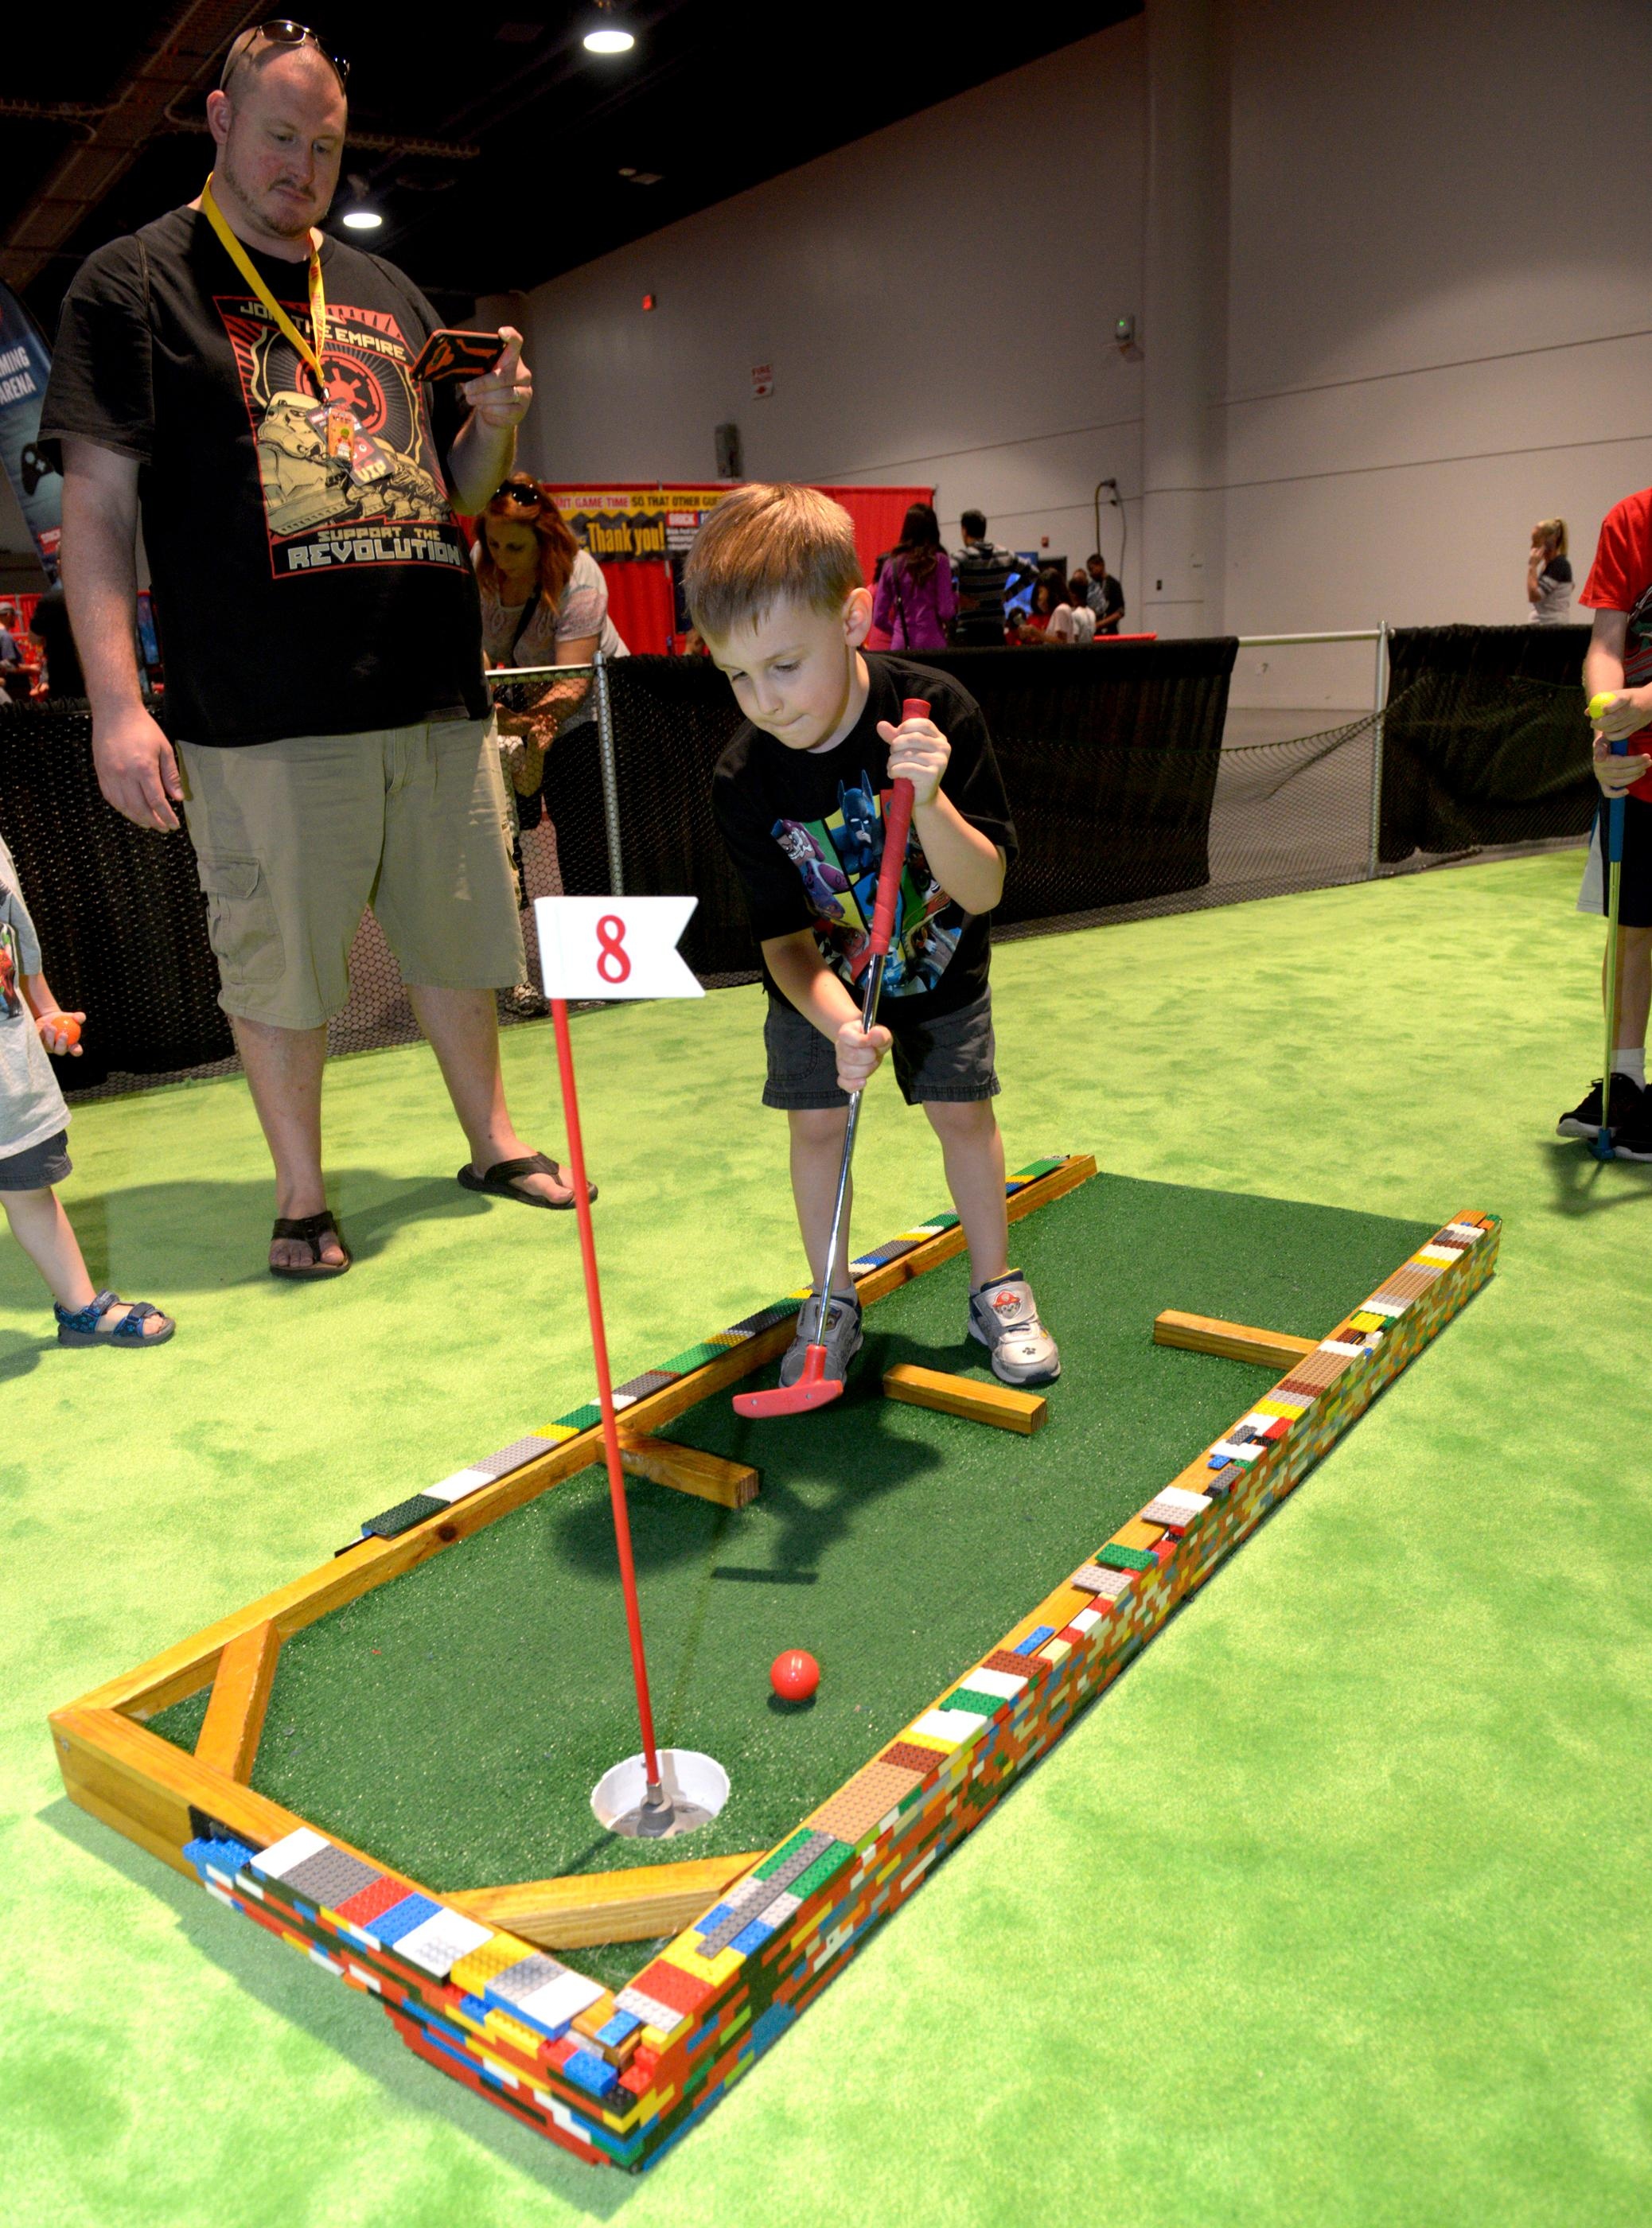 Kids get to play miniature golf during the Brick Fest Live Lego Fan Experience at the Las Vegas Convention Center, September 9, 2017. [Glenn Pinkerton/Las Vegas News Bureau]